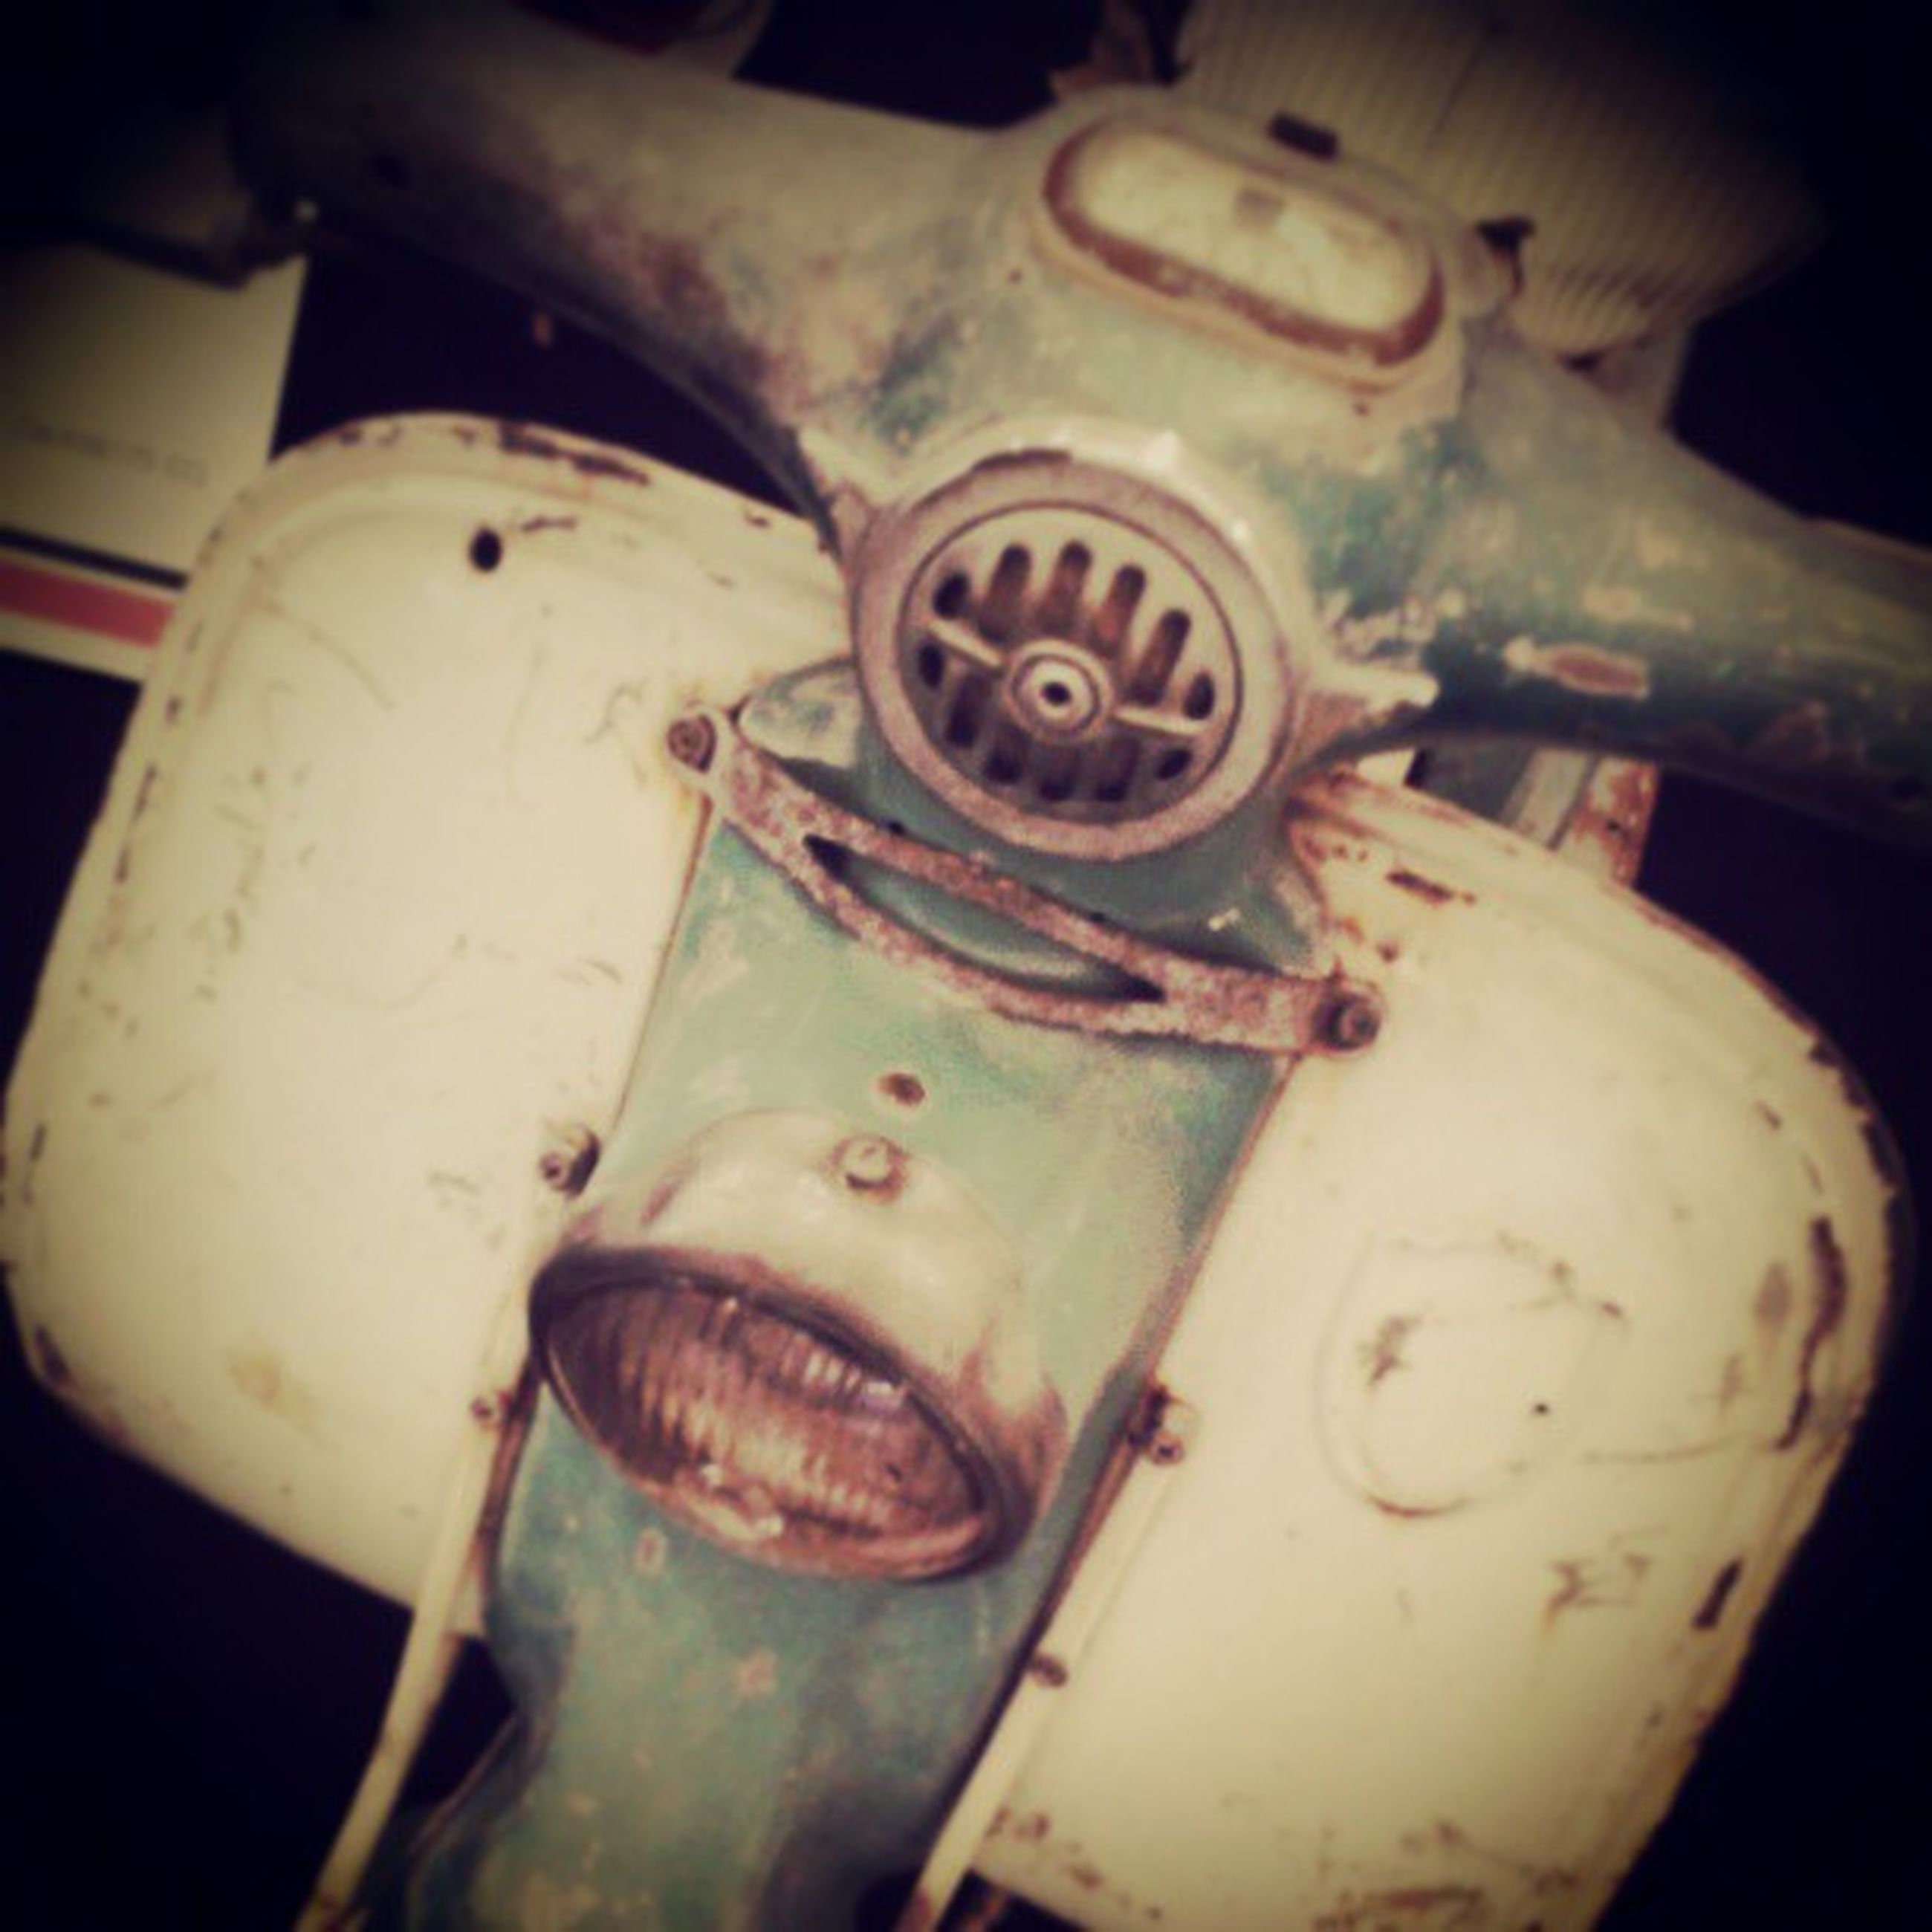 close-up, abandoned, obsolete, mode of transport, indoors, transportation, damaged, old, no people, metal, animal themes, deterioration, car, high angle view, rusty, focus on foreground, day, land vehicle, run-down